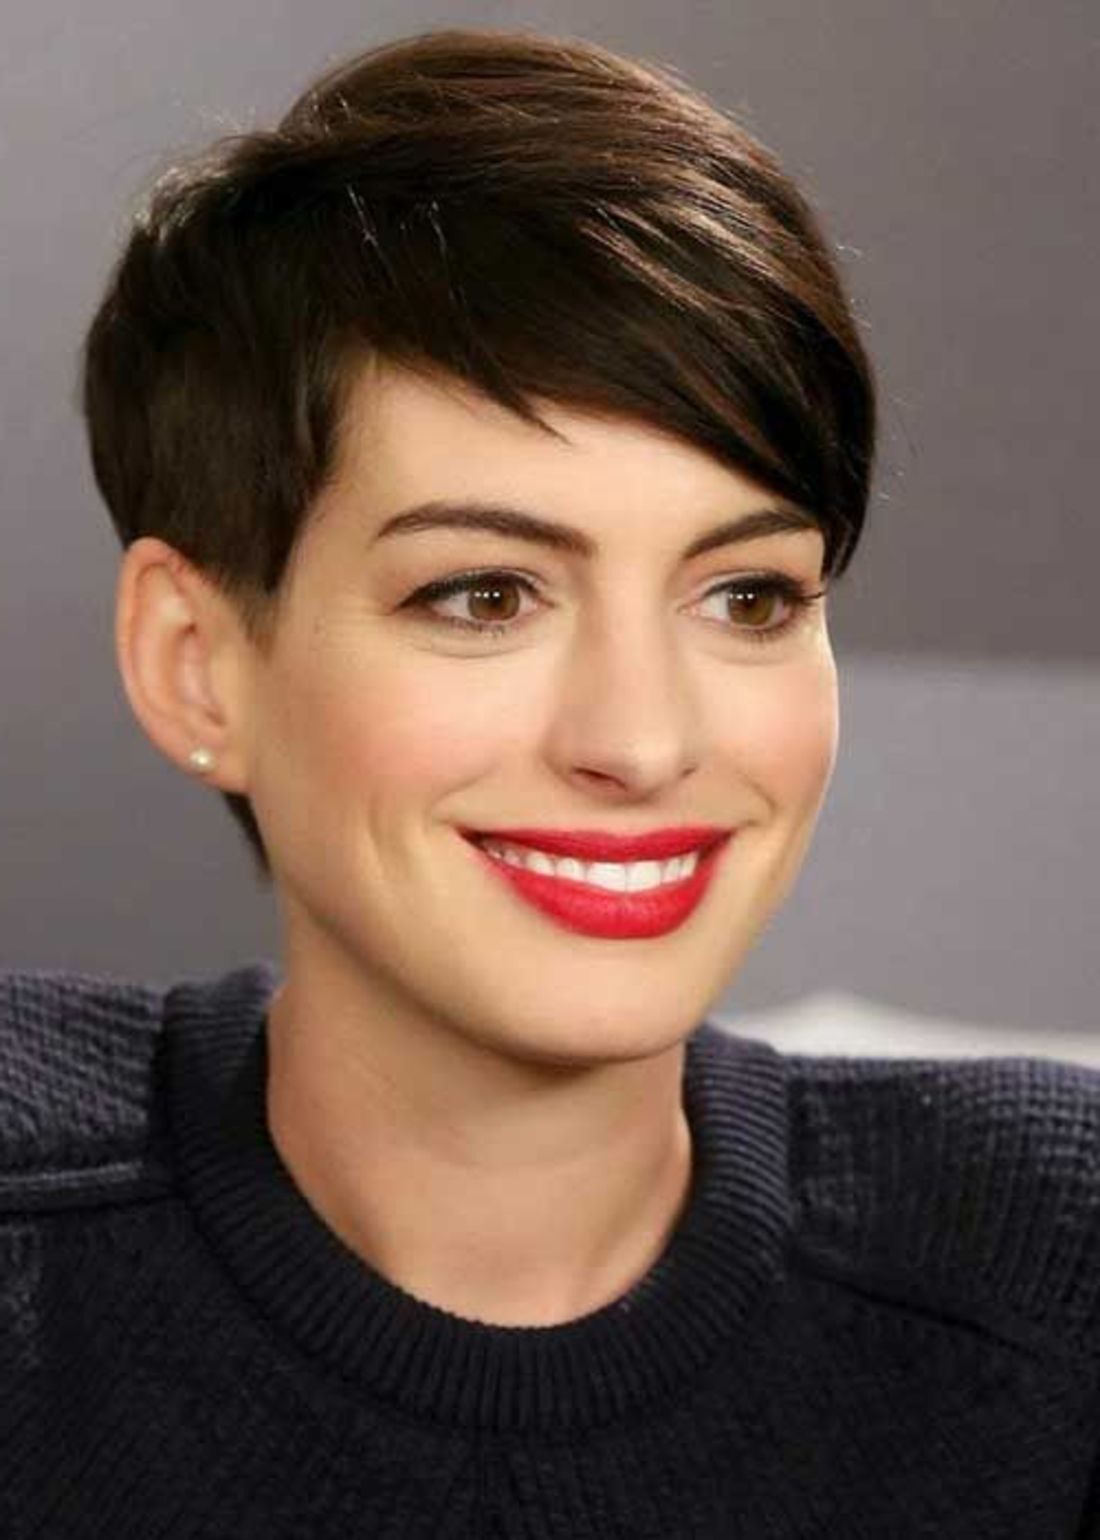 anne hathaway kurze haare und rote lippenstift undercut frisuren frauen kurze haare moderne. Black Bedroom Furniture Sets. Home Design Ideas